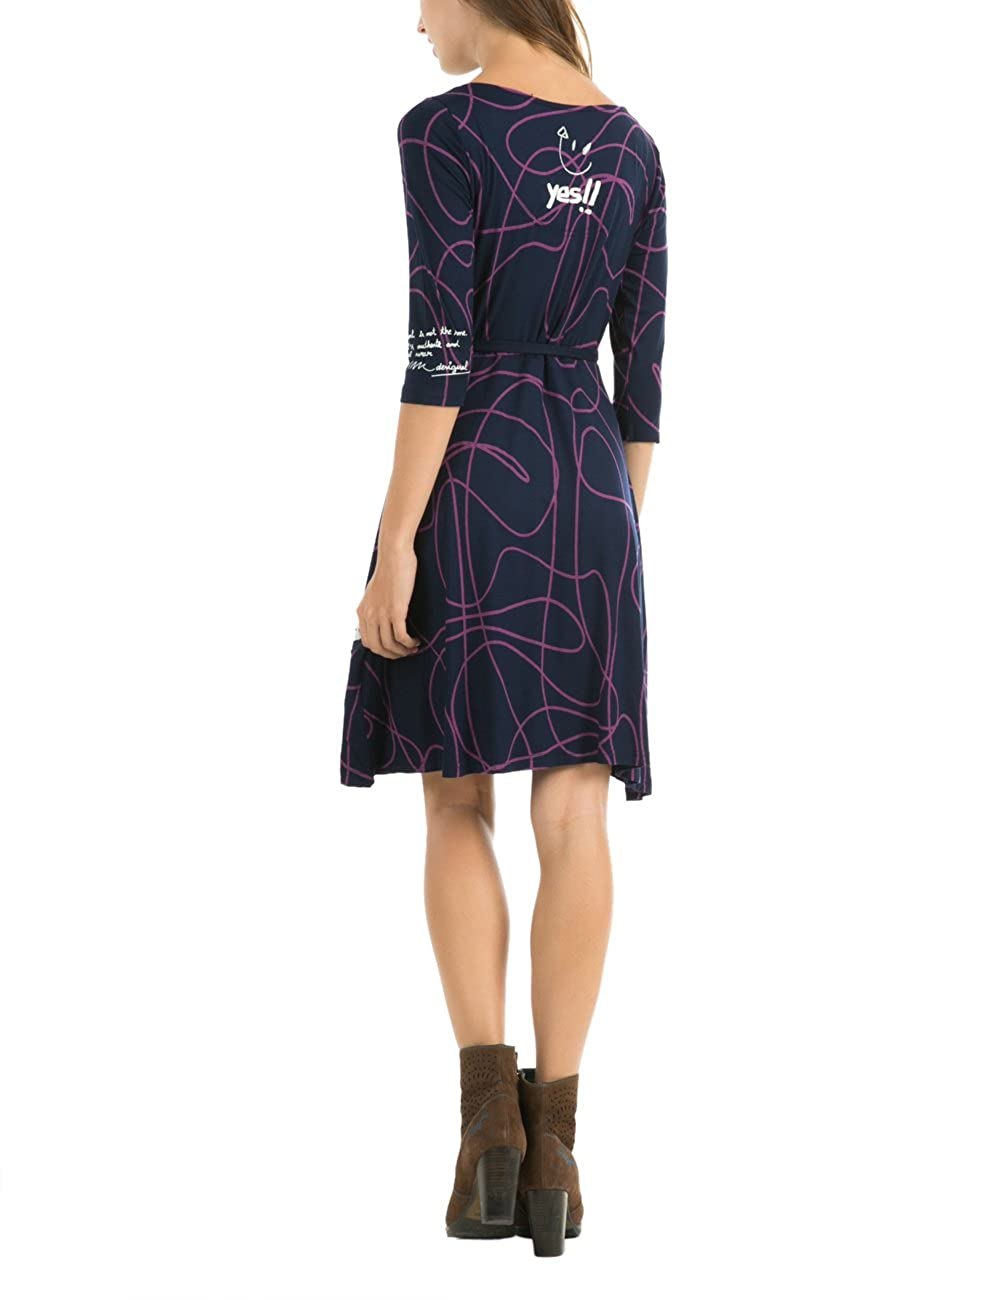 Desigual Womens Vest Charissa, Navy, Medium at Amazon Womens Clothing store: